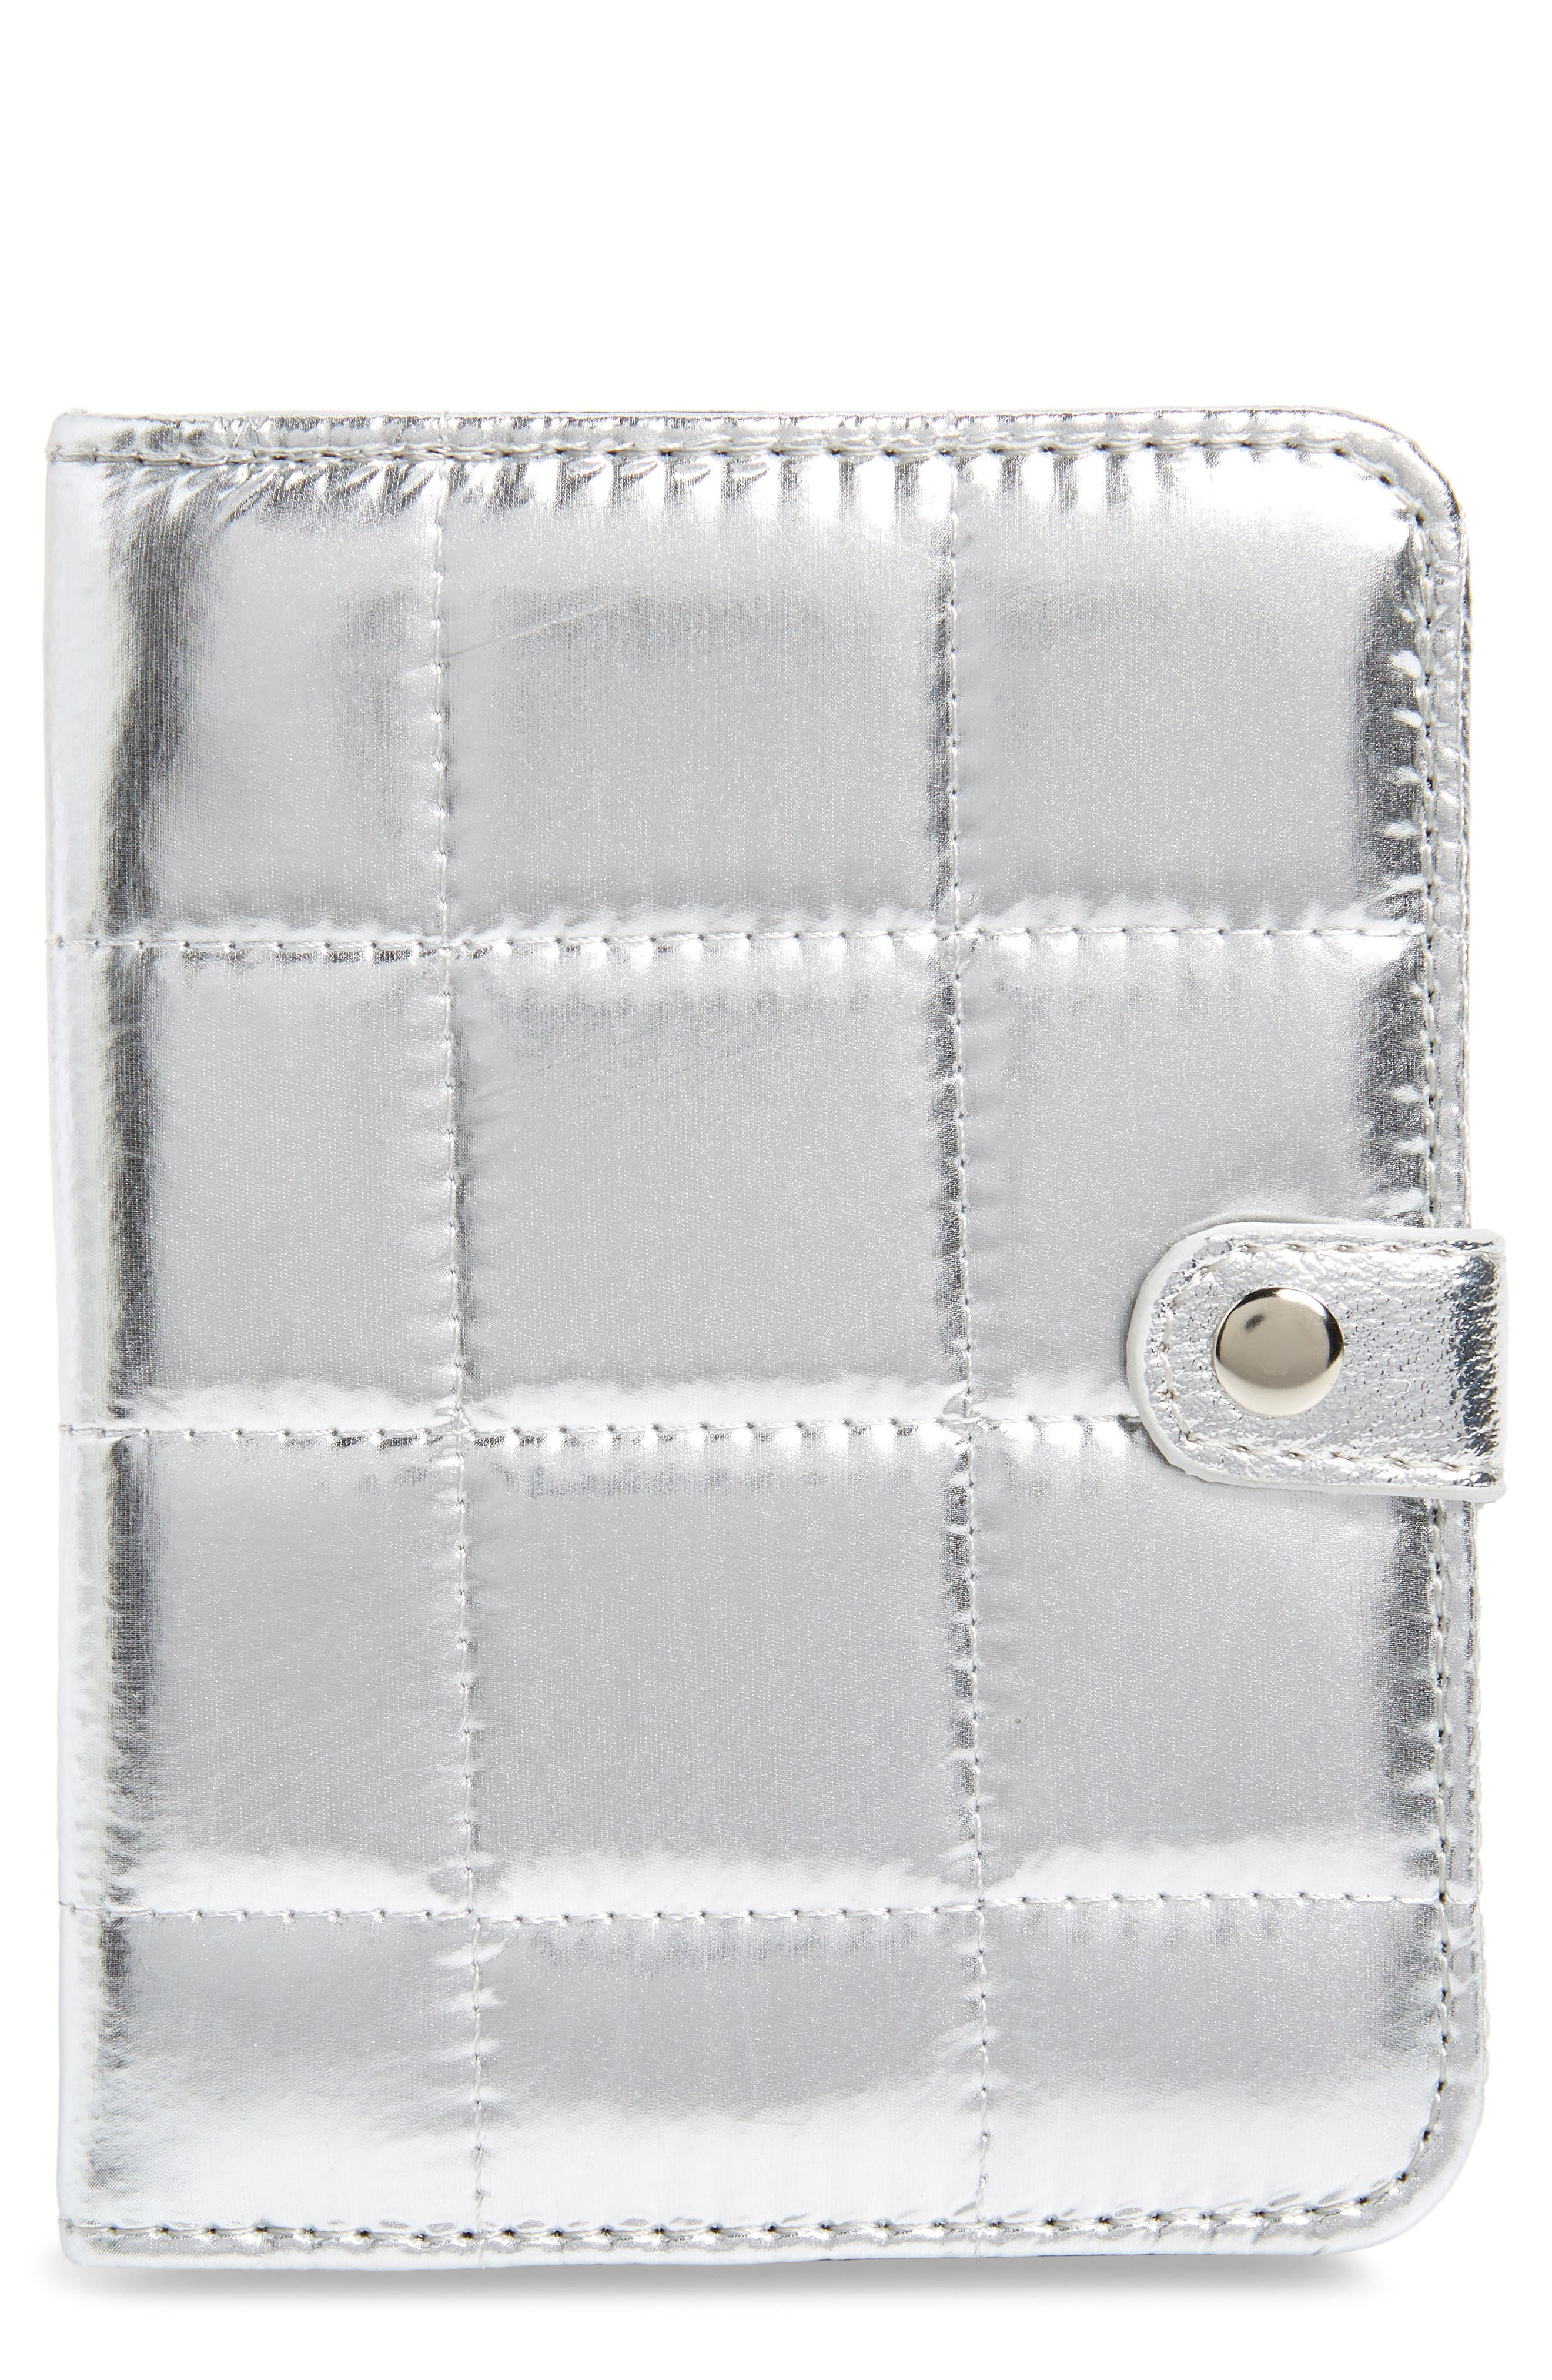 Metallic Puffer Wallet,                             Main thumbnail 1, color,                             Silver